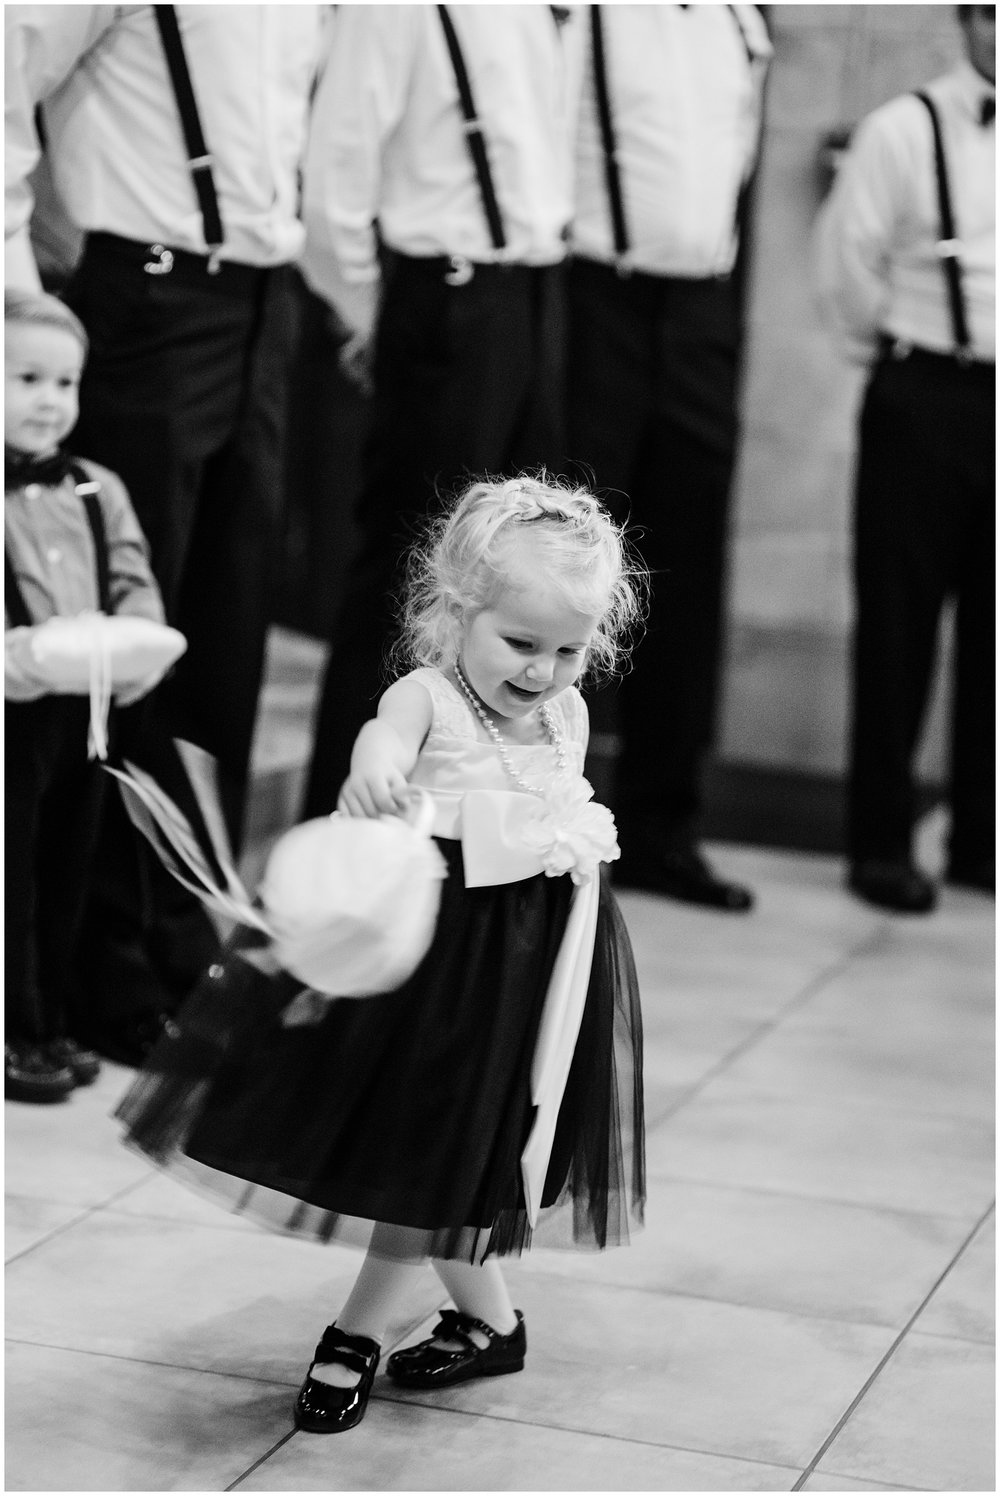 Is there anything more delightful than an adorable flower girl lost in her own little world?